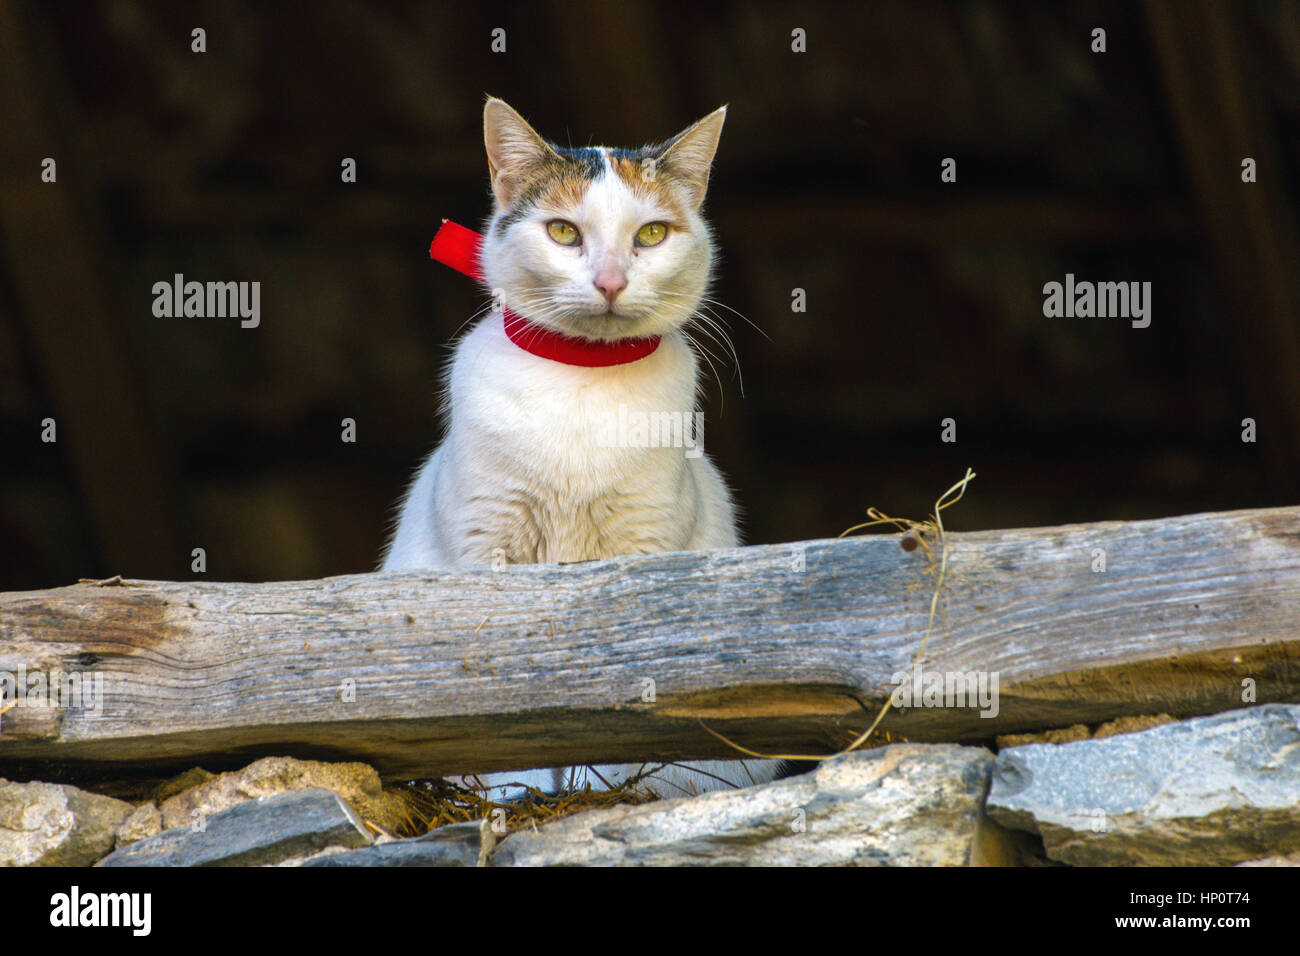 White and ginger cat with red collar looking out of dark stone barn Stock Photo